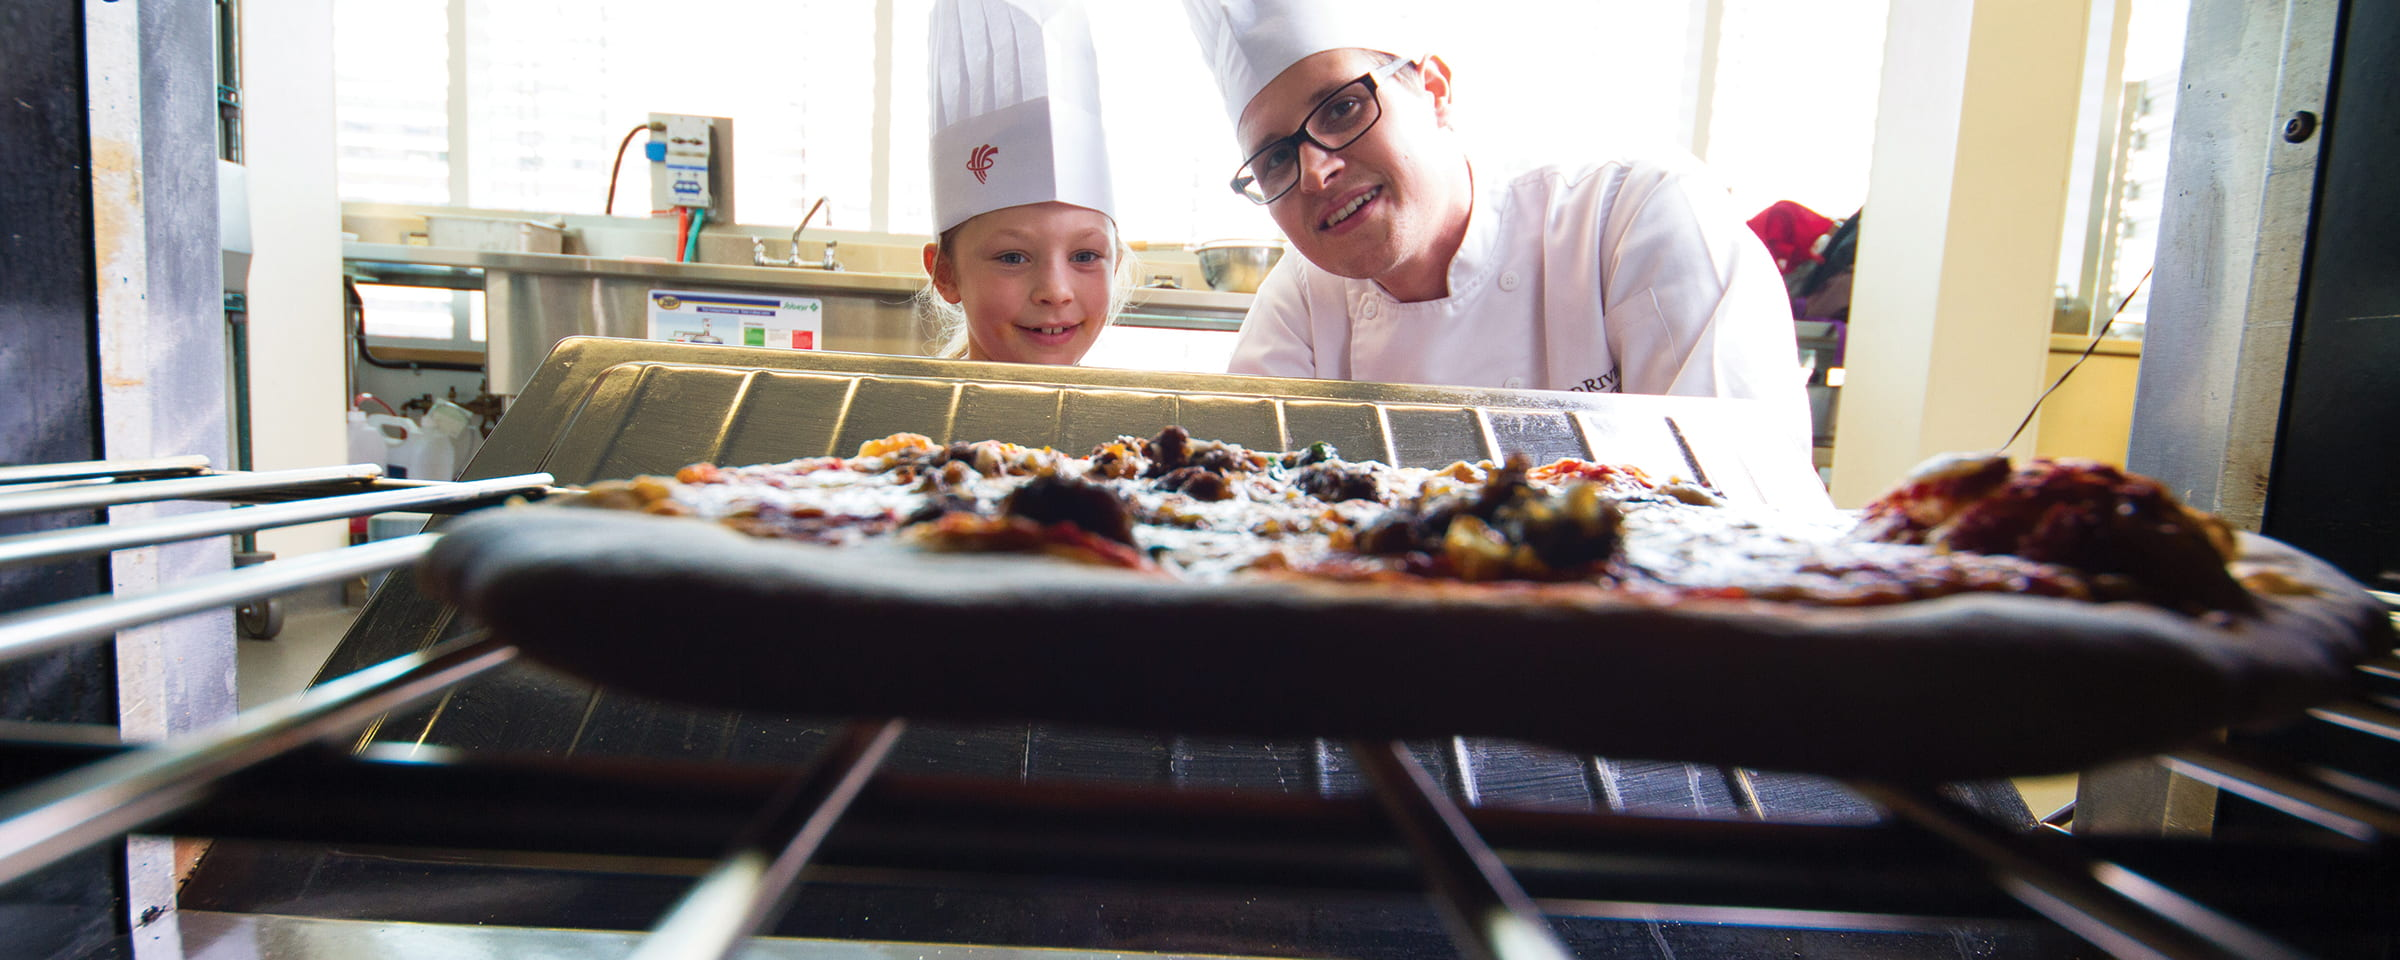 Culinary camp for kids this summer